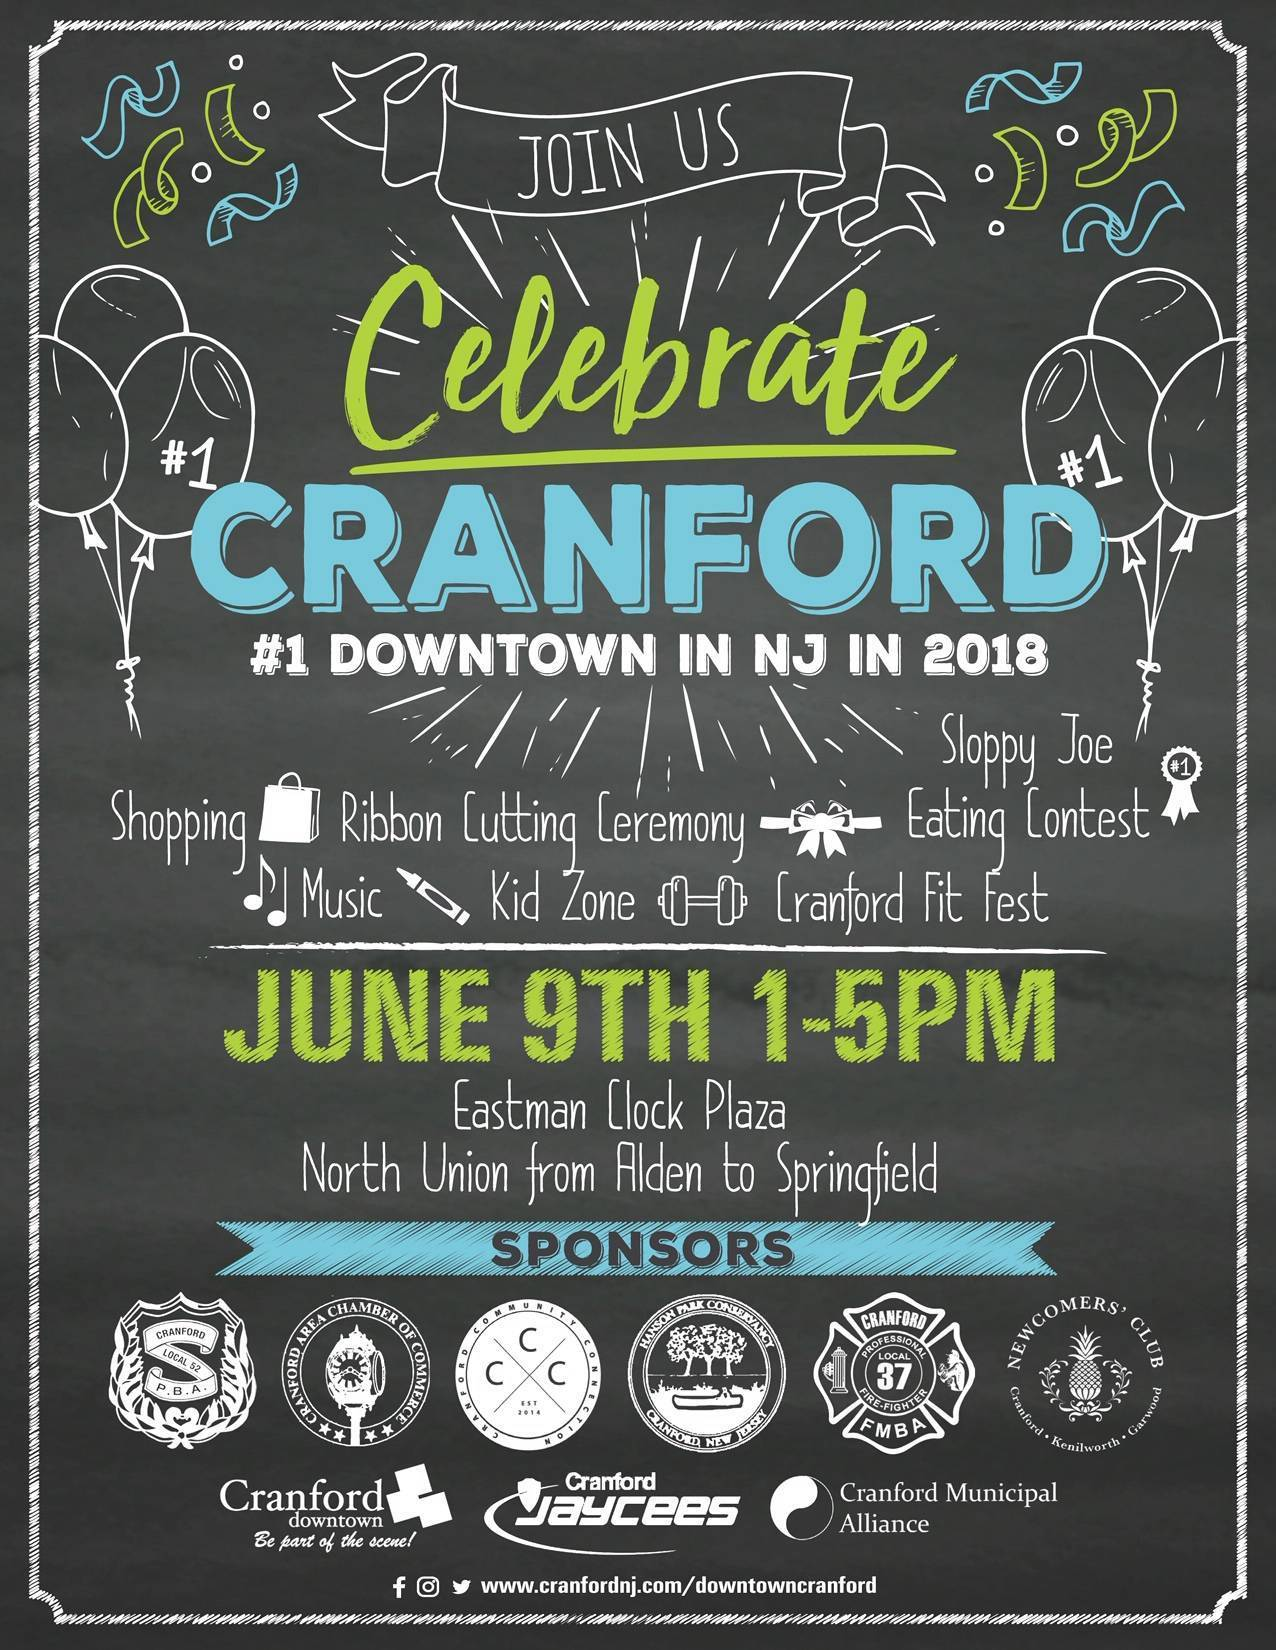 Celebrate Cranford Adjusted FLYER 5-30 2.jpg